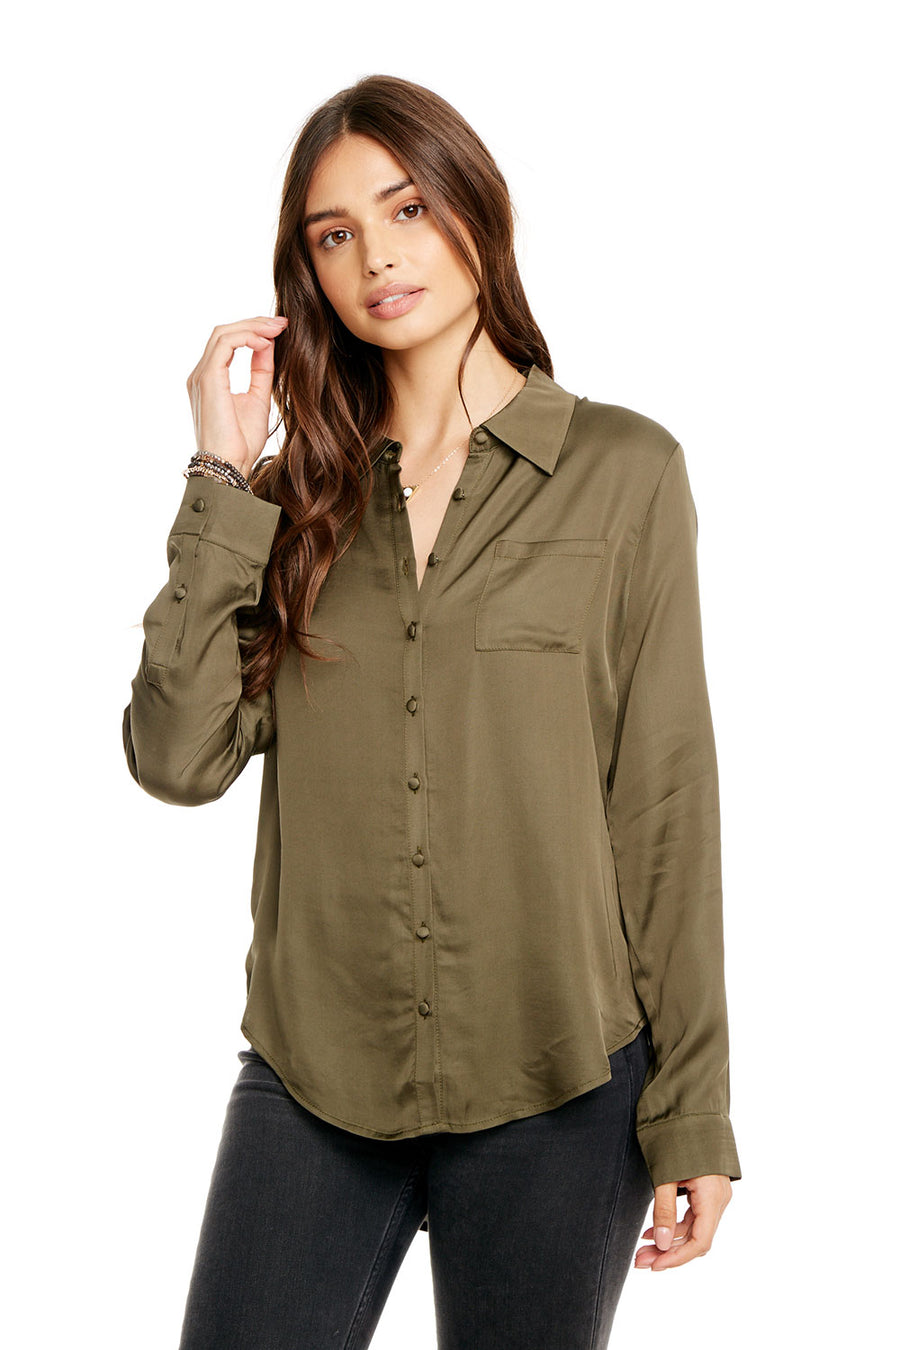 SILKY BASICS L/S HI-LO CLASSIC BUTTON DOWN SHIRT W/ POCKET